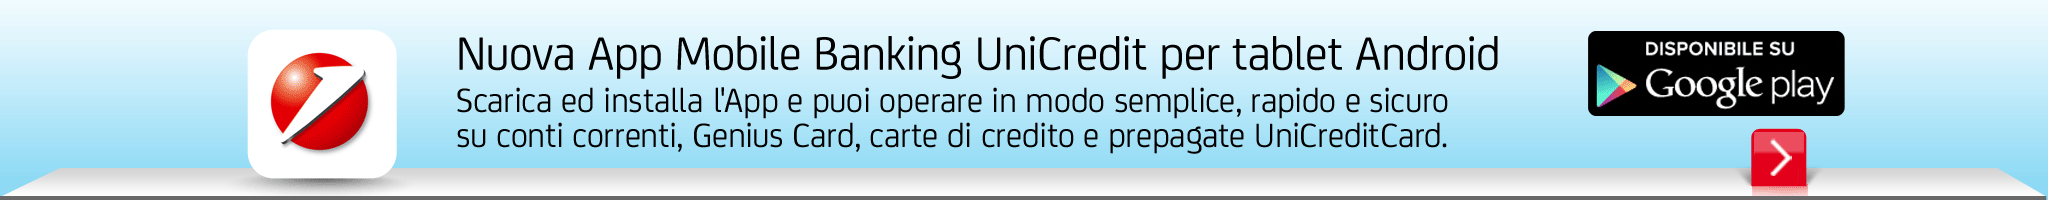 Nuova App Mobile Banking UniCredit per Tablet Android